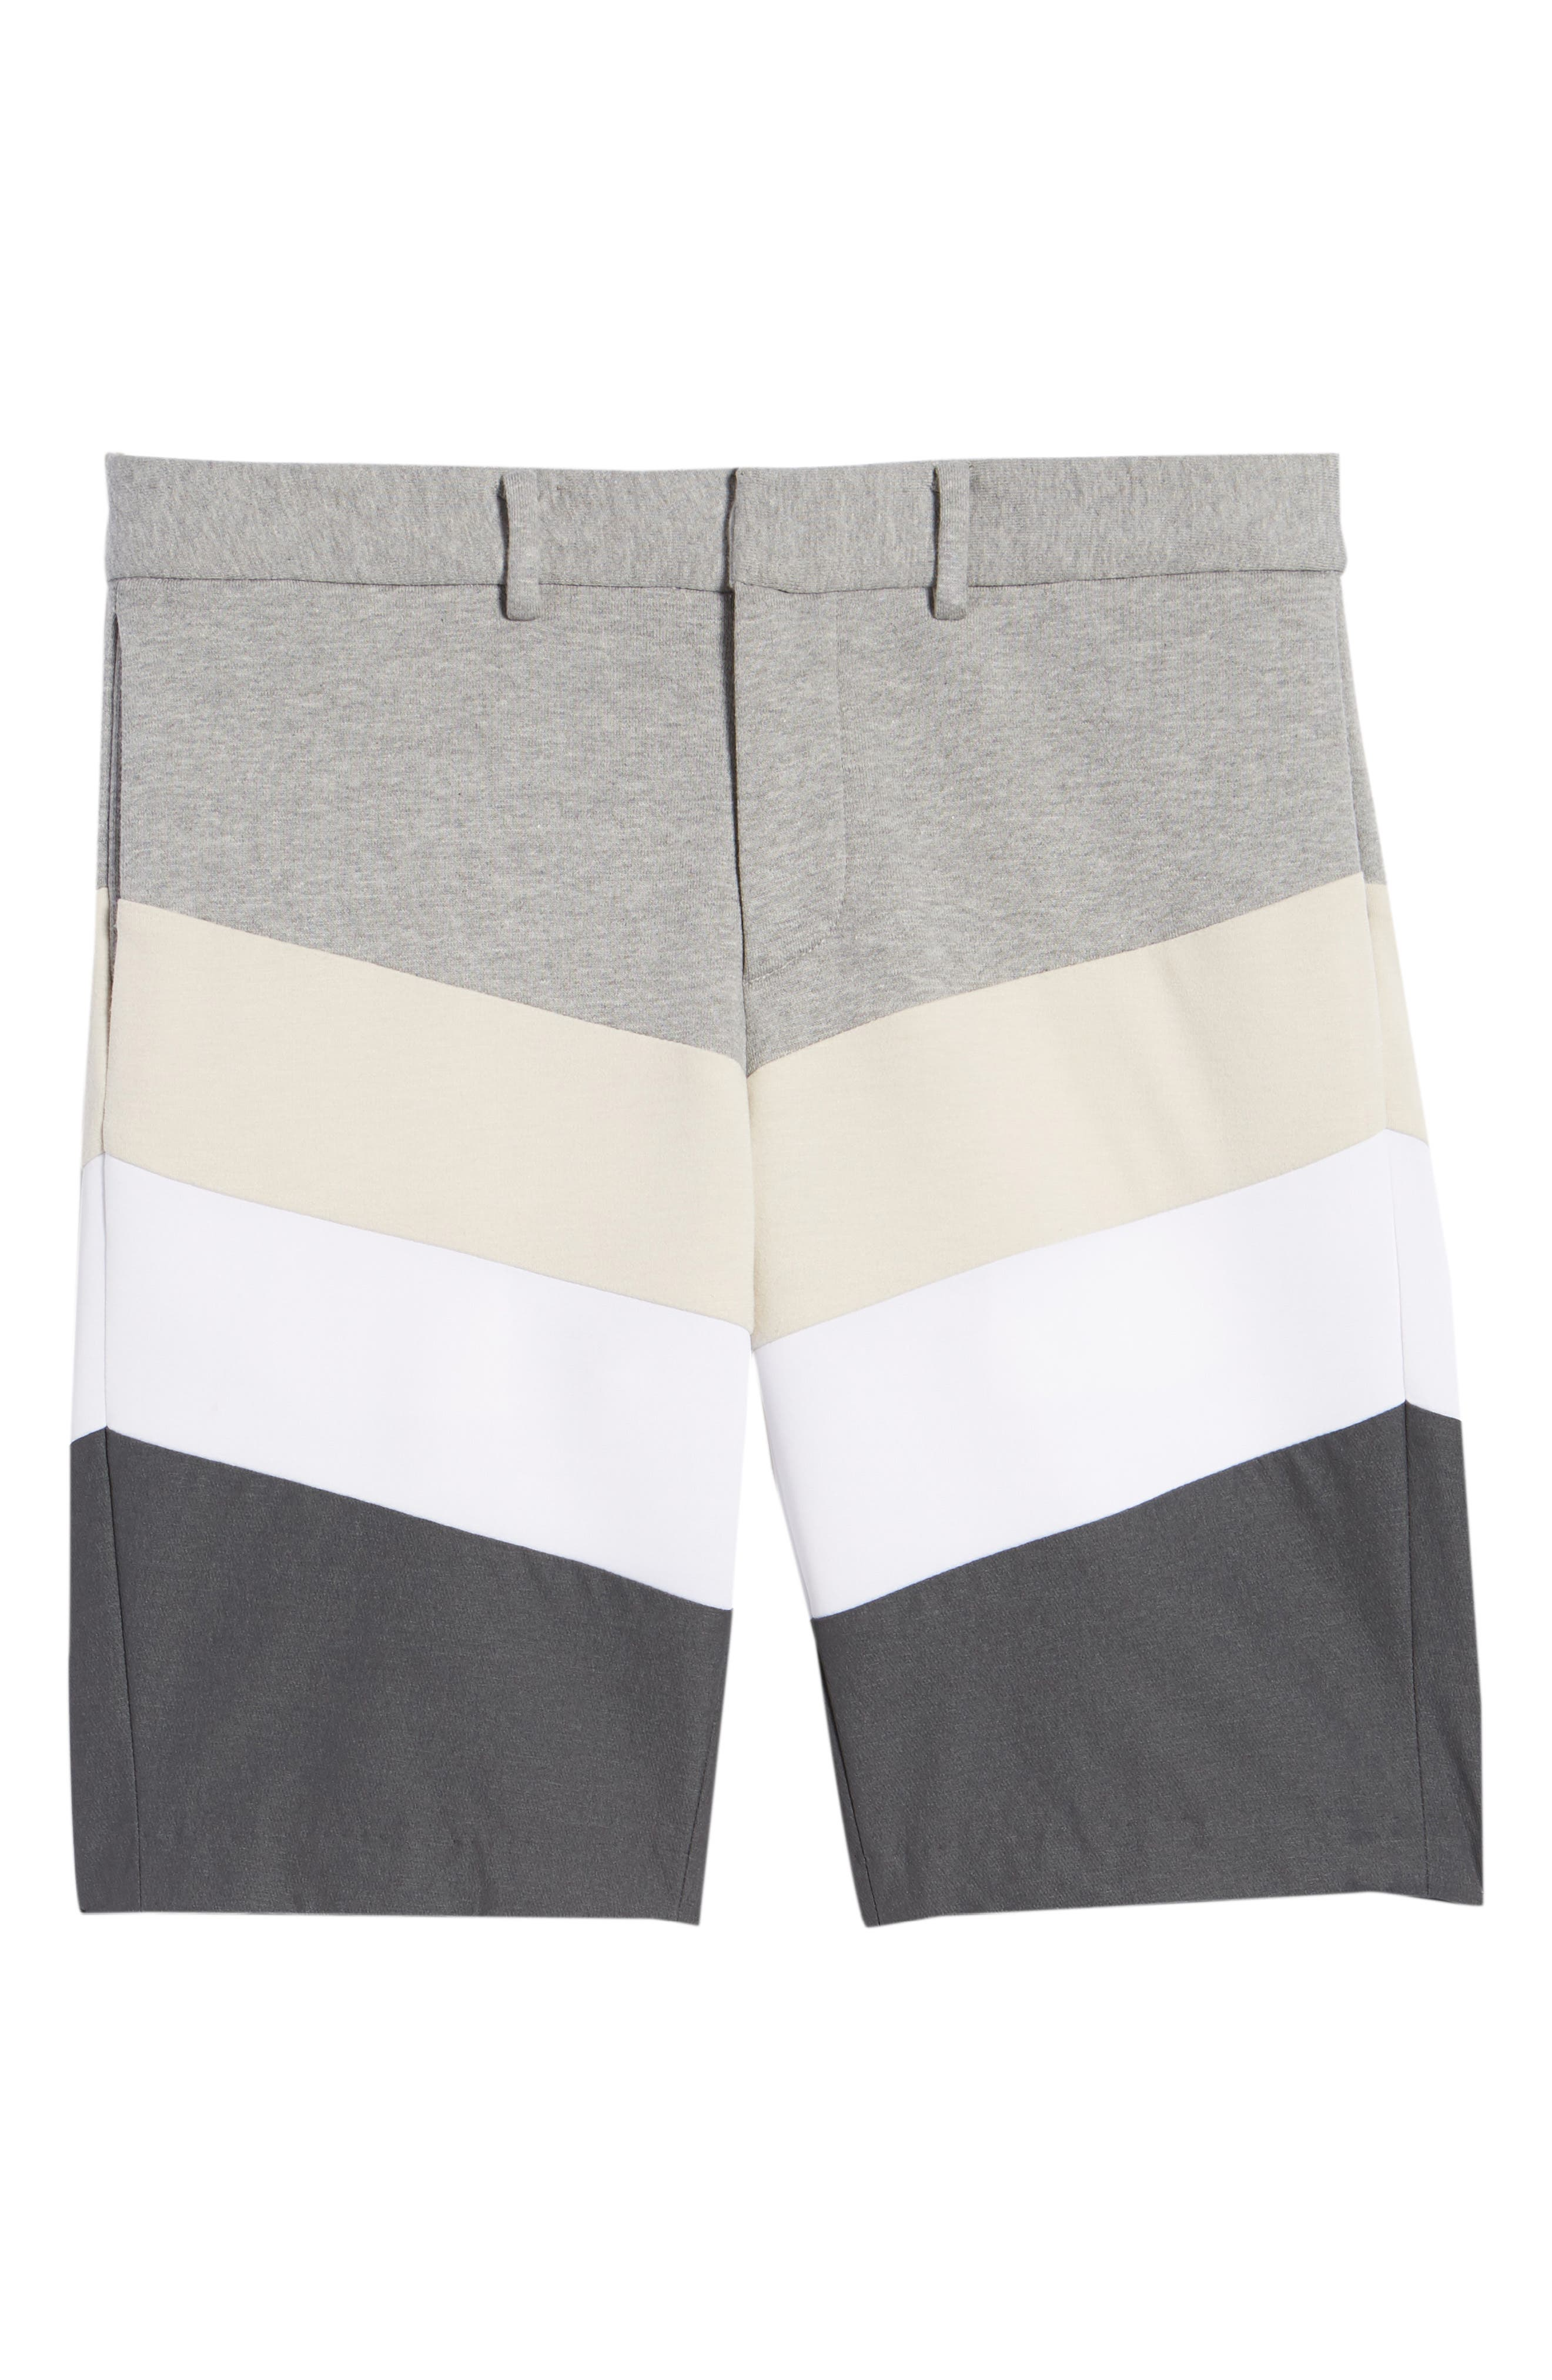 Chevron Colorblock Shorts,                             Alternate thumbnail 6, color,                             HEATHER GREY